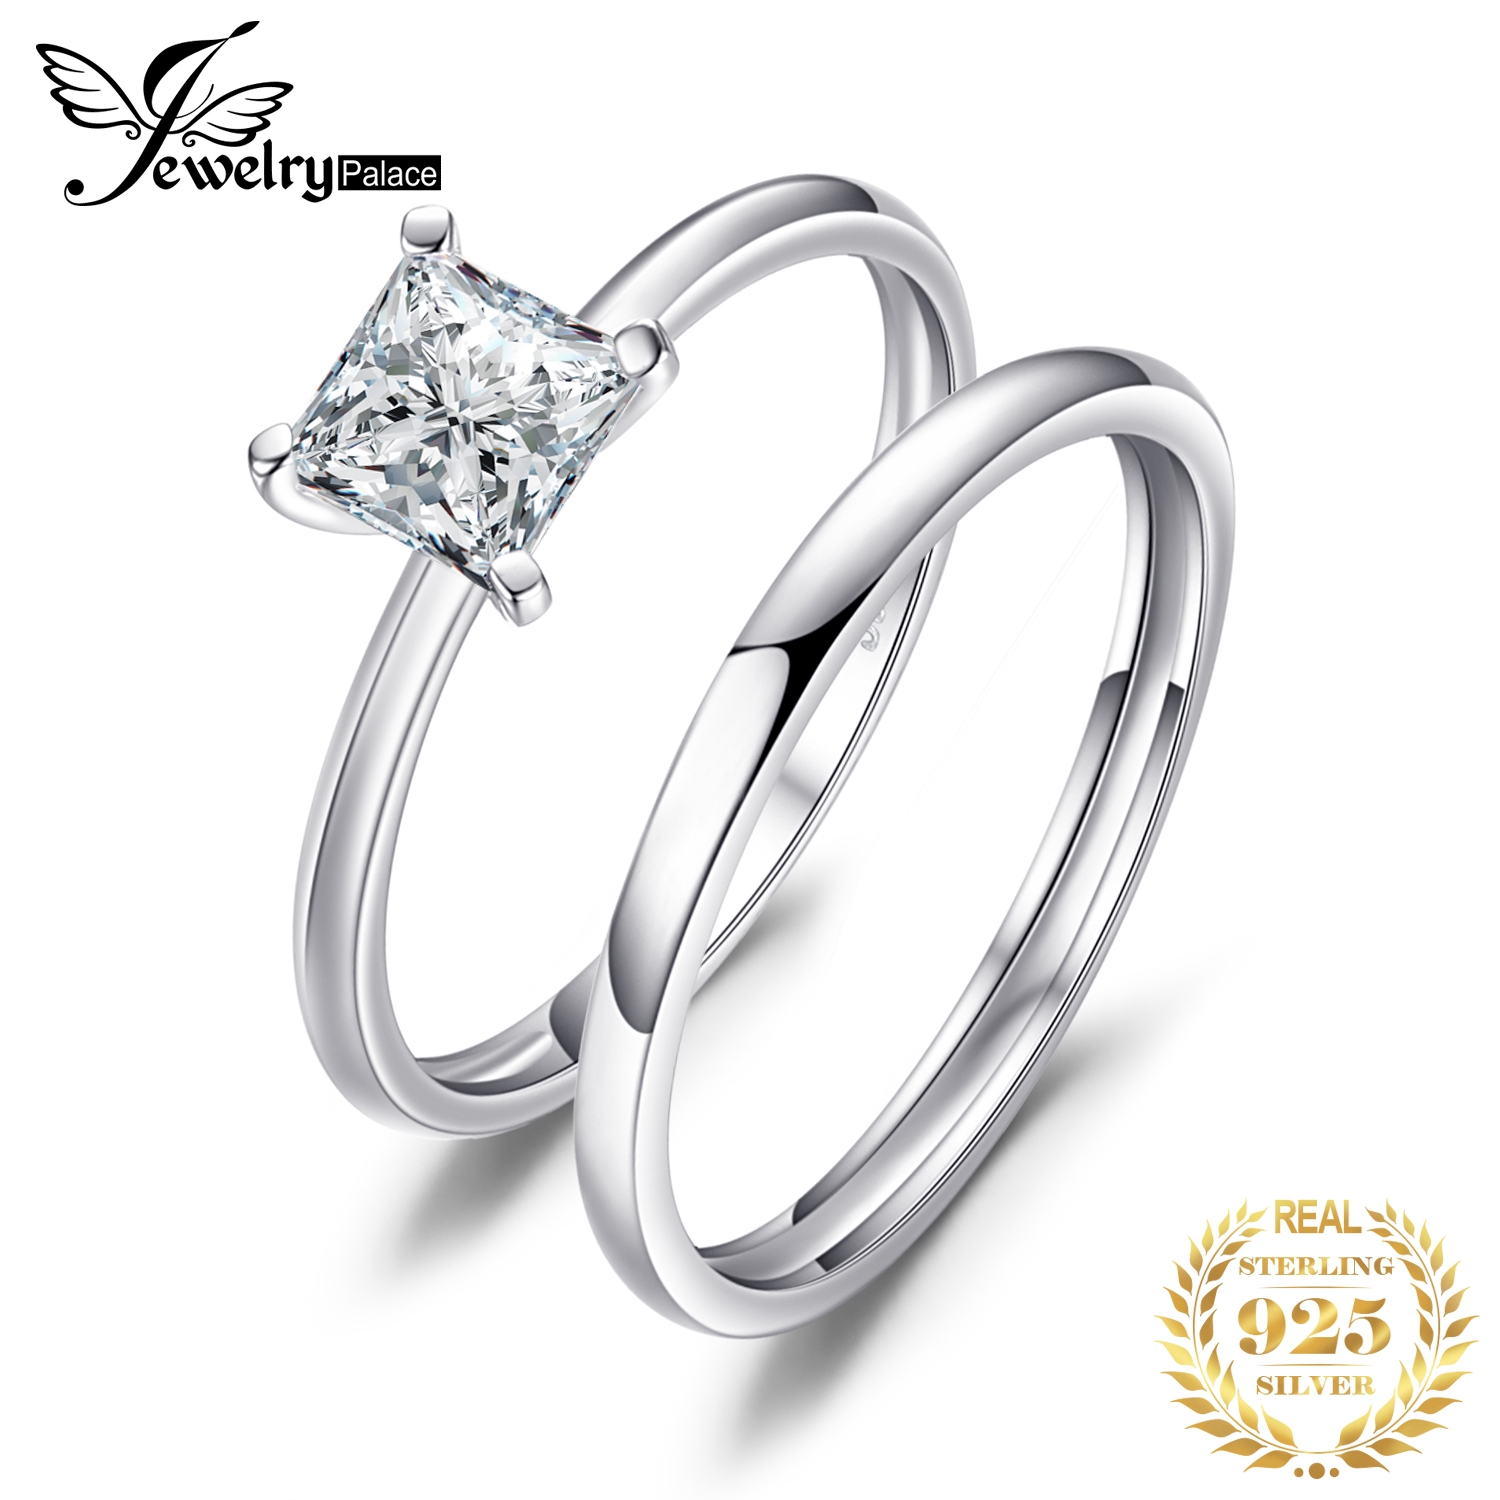 Details about  /Jpalace Wedding Rings Sets 925 Sterling Silver Rings for Women Anniversary